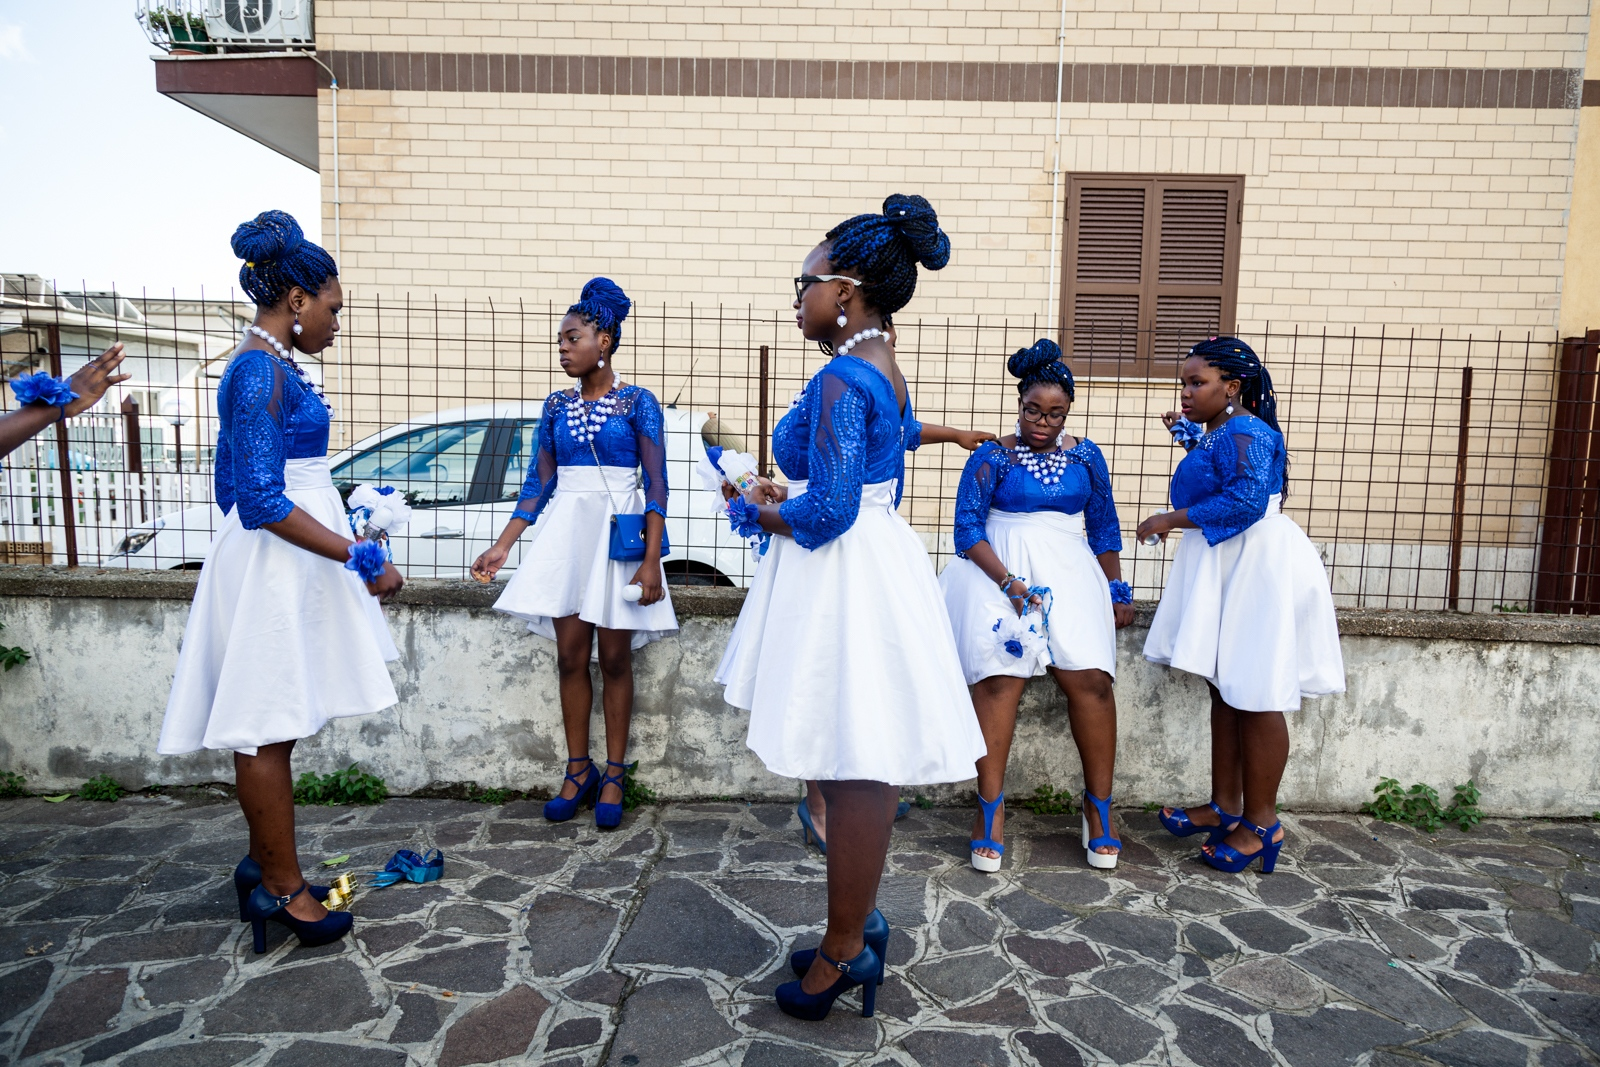 Teenagers members of the Apostolic Nigerian Church, God's Mercy in the southeastern neighborhood of Torre Angella gather outside the church before a wedding.